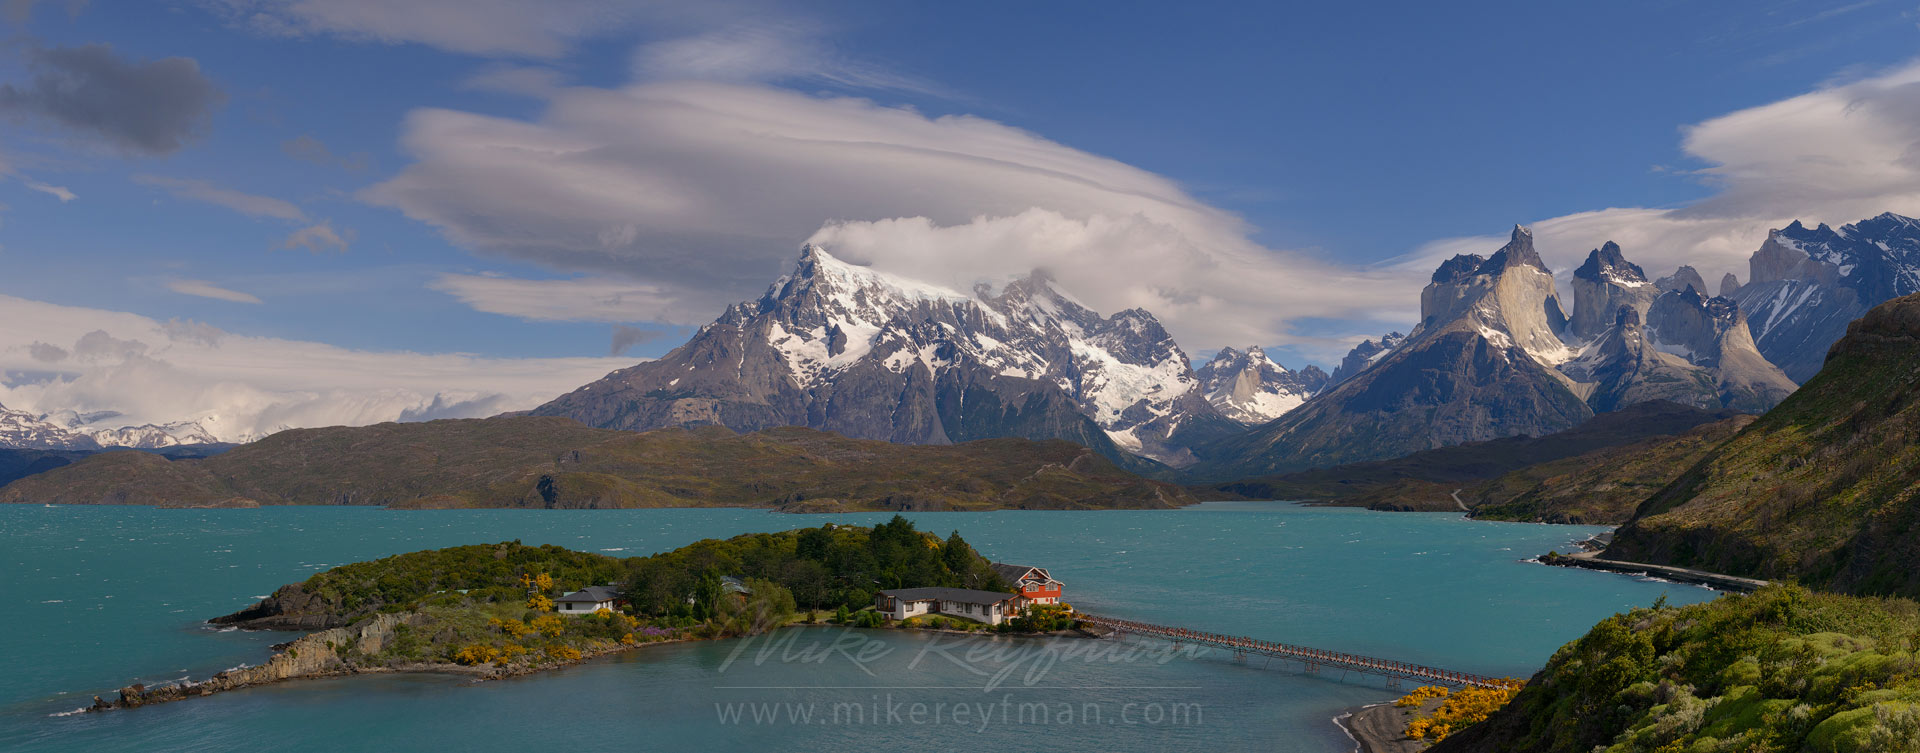 Hosteria Pehoe, Lago Pehoe and Cordillera del Paine as seen from Mirador Condores. Torres del Paine National Park, Ultima Esperanza Province, Magallanes and Antartica Chilena Region XII, Patagonia, Chile. - Torres-Del-Paine-National-Park-Patagonia-Chile - Mike Reyfman Photography